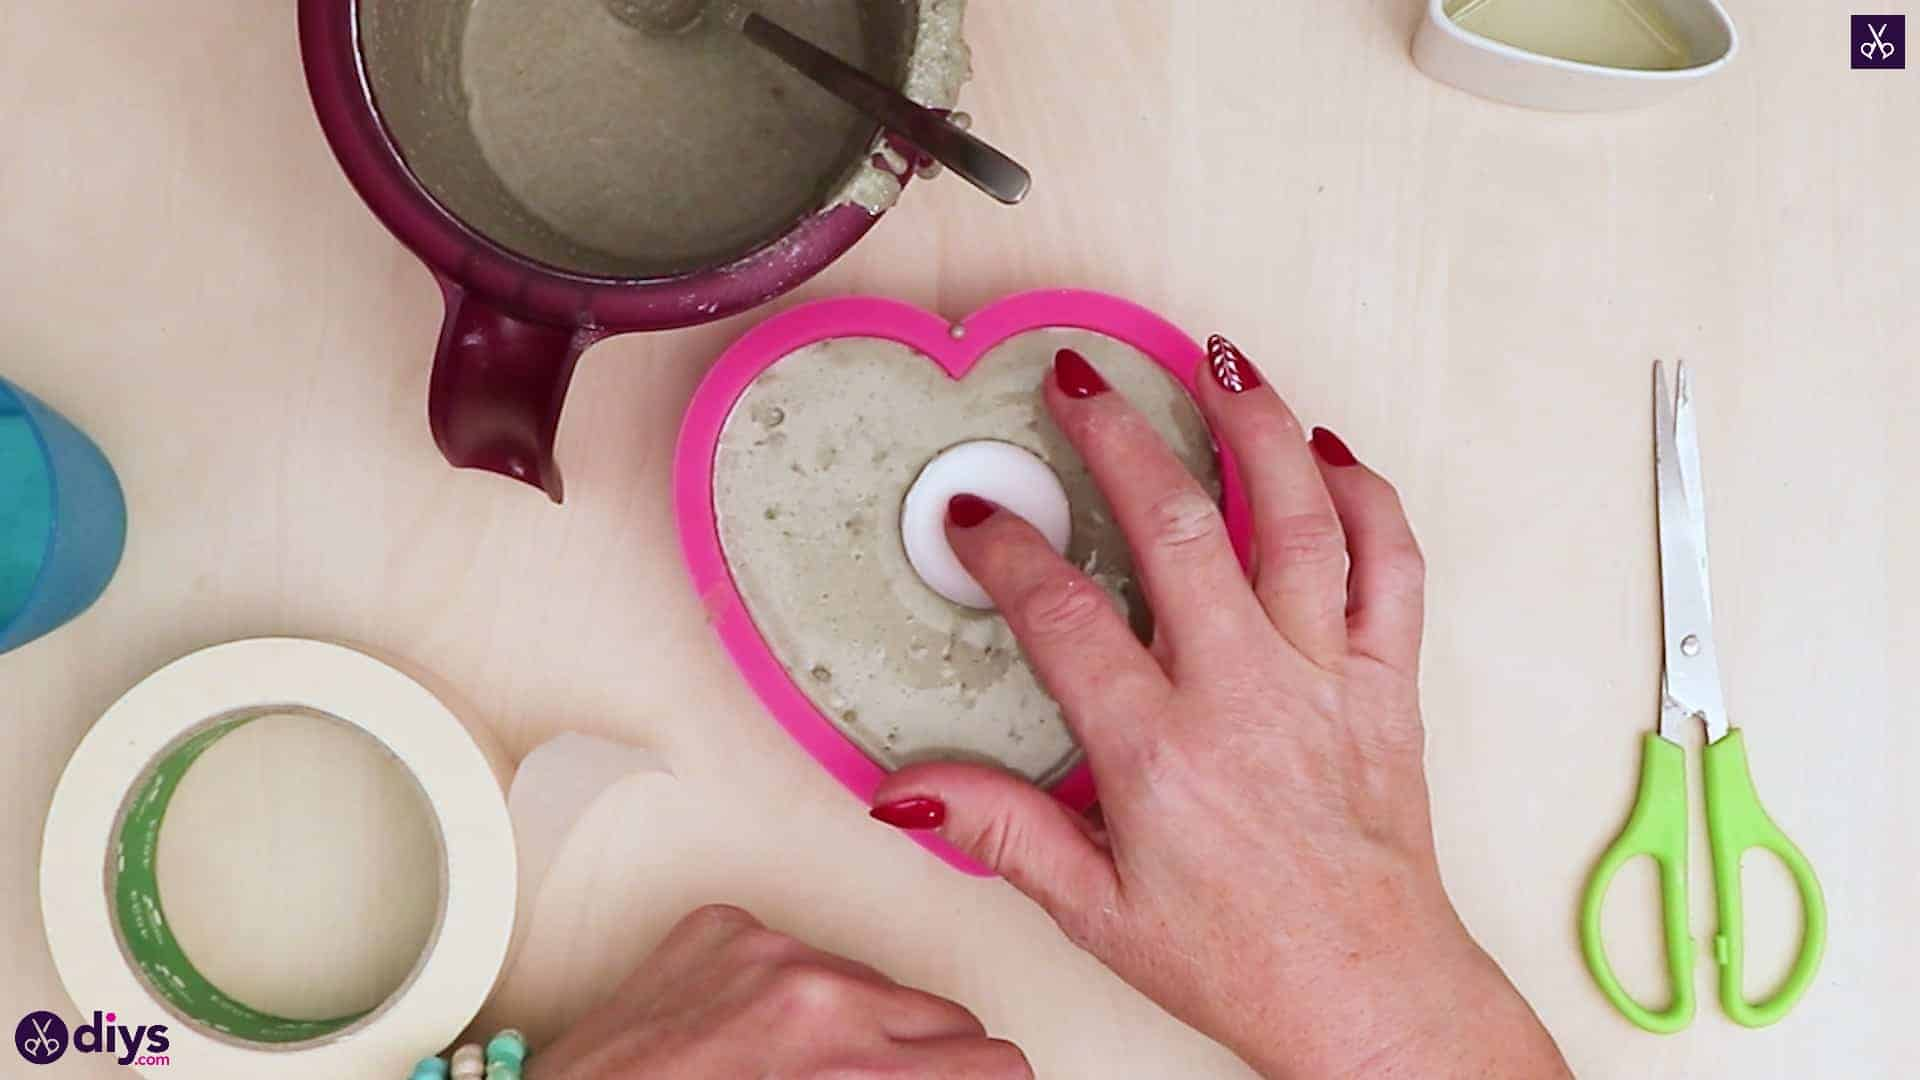 Diy concrete heart candle holder add candle